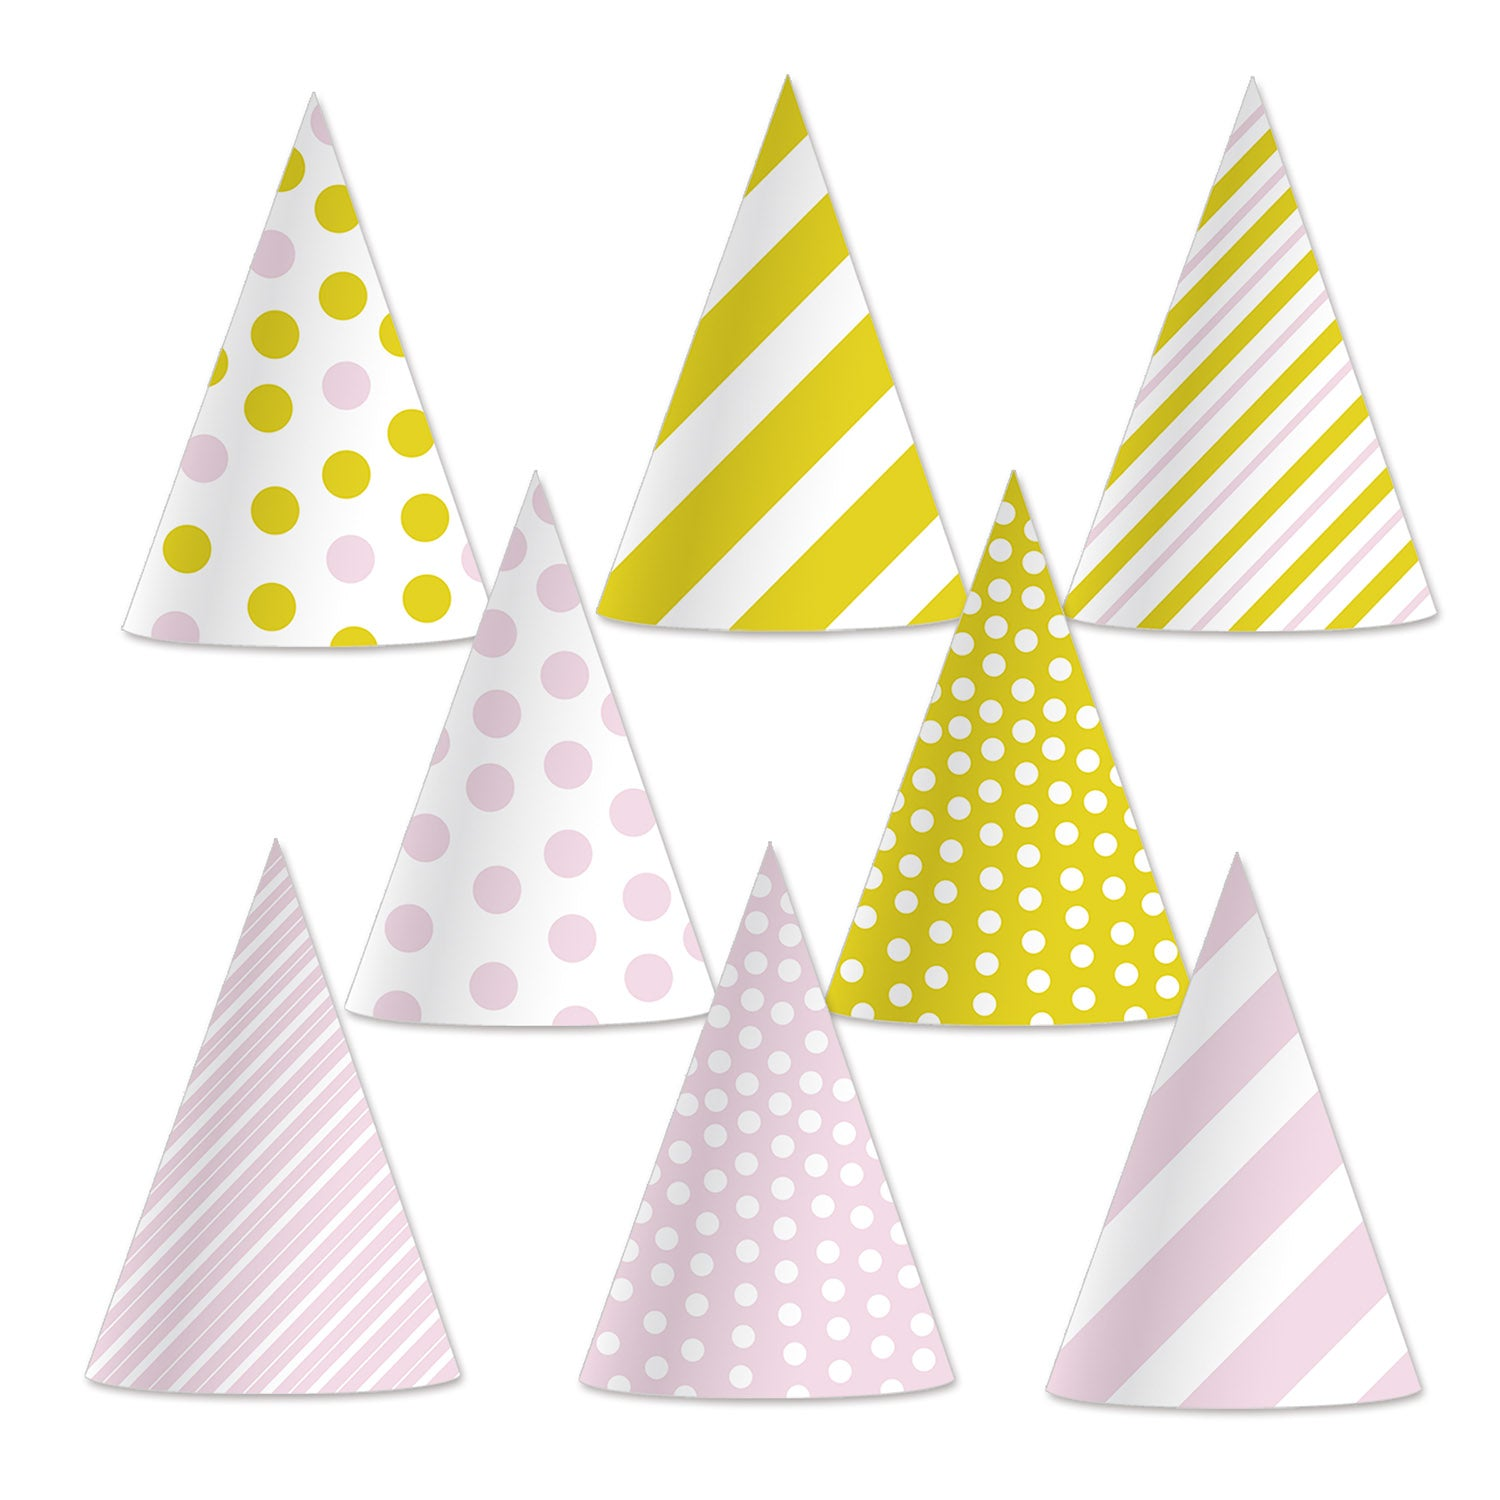 Pink & Gold Cone Hats (8/Pkg) by Beistle - Birthday Party Supplies Decorations